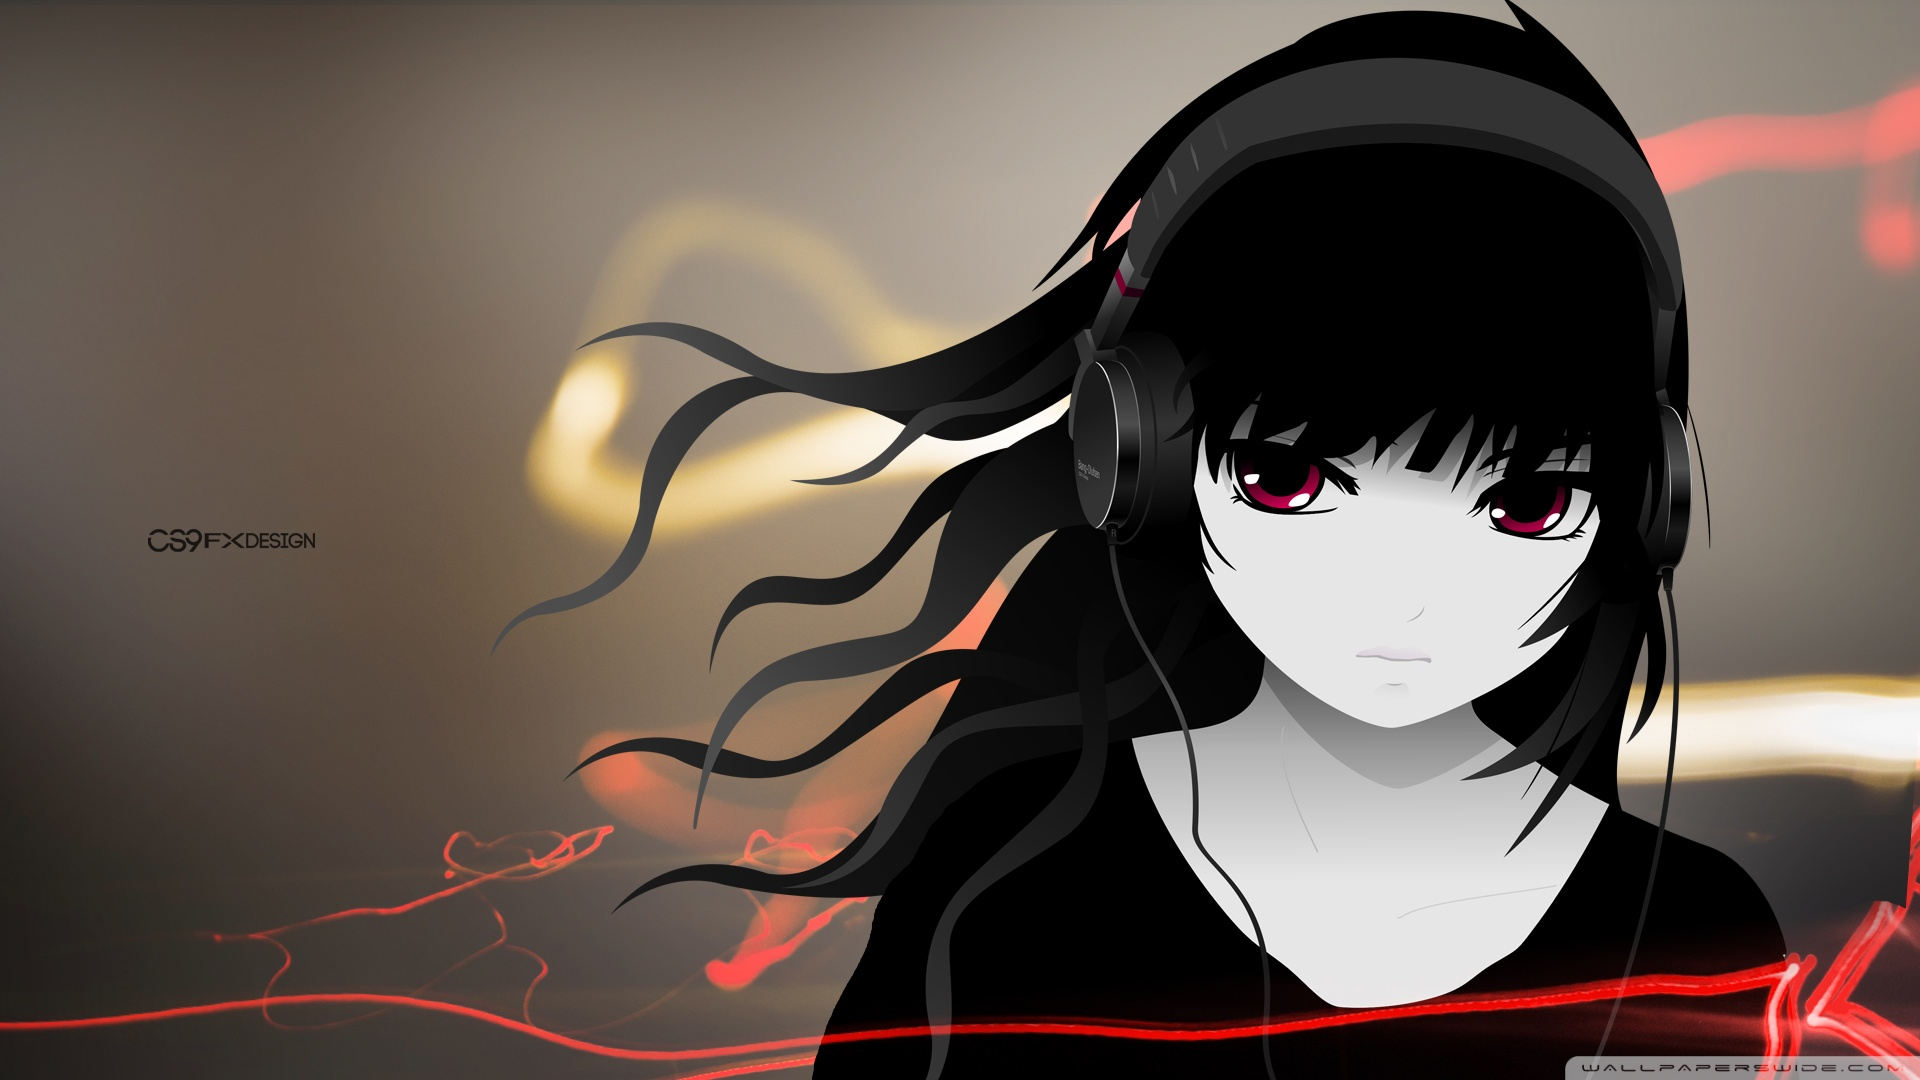 Free Download Emo Girl Wallpapers For Mobile Girl With Headphone Full Hd By Cs9 Fx Design 4k Hd